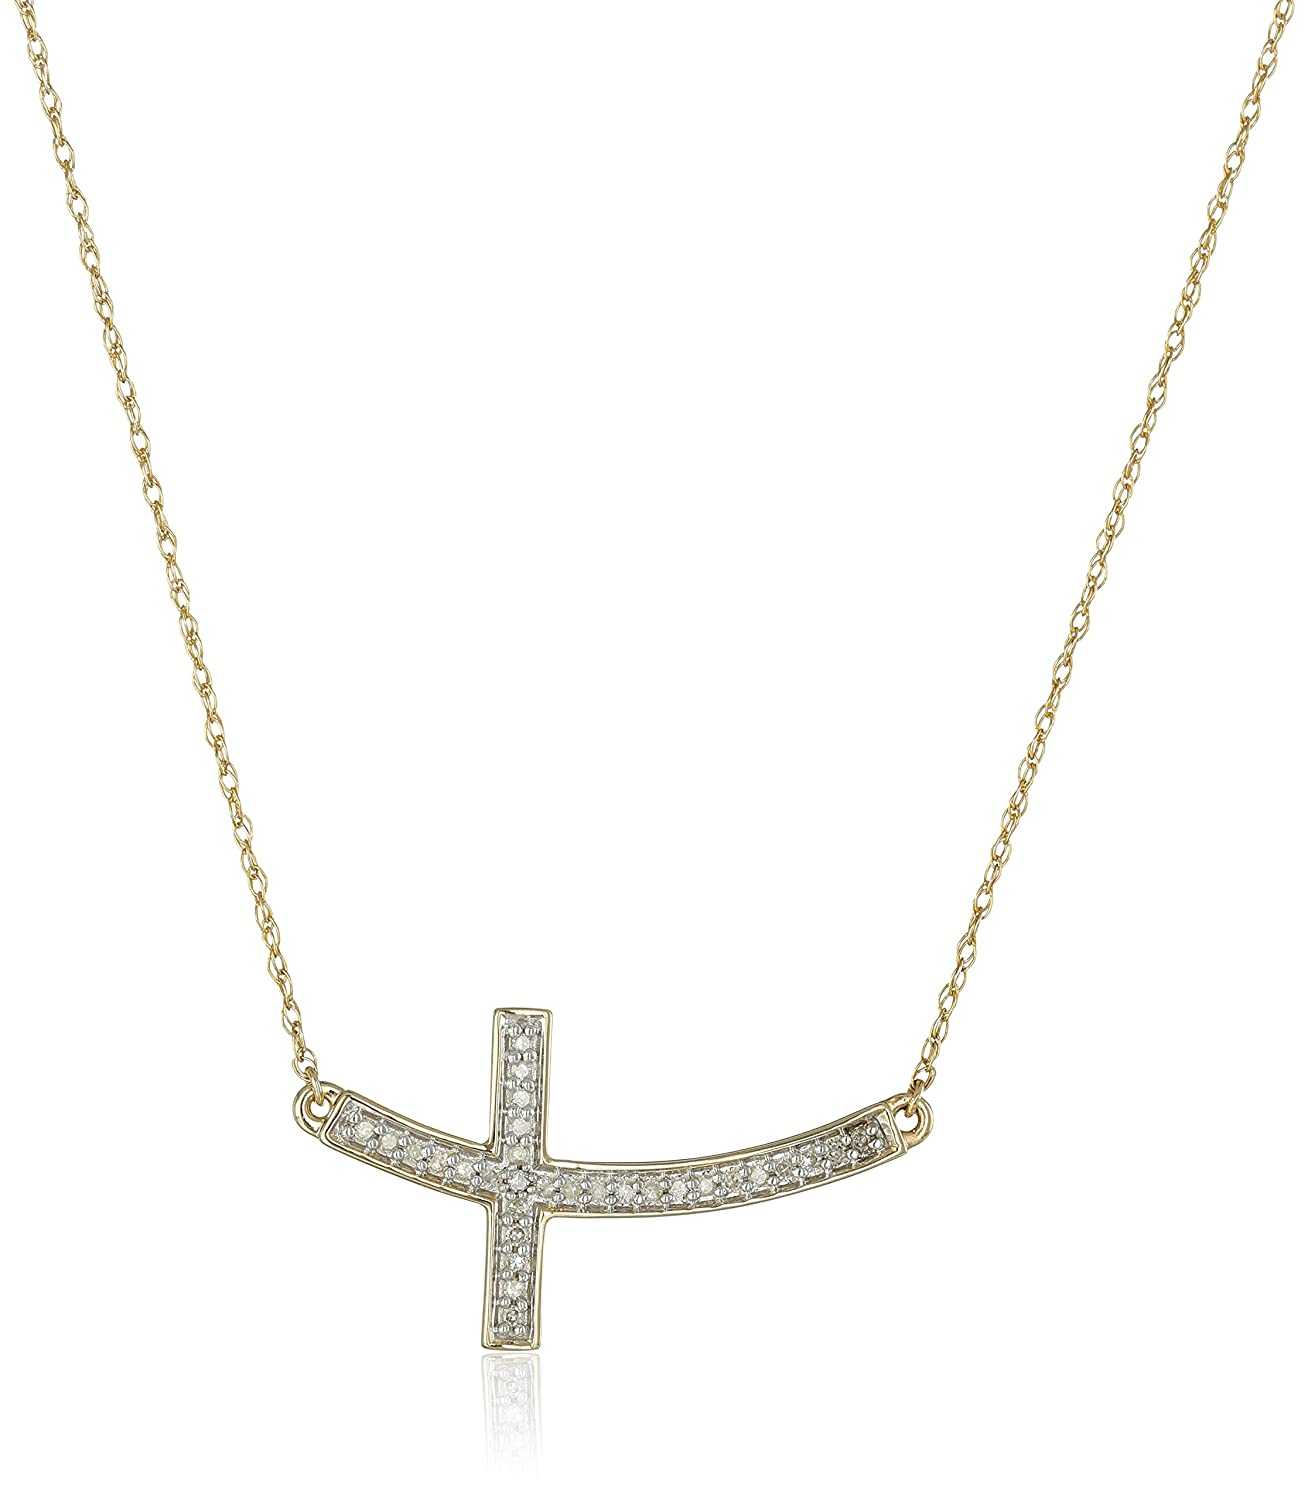 10k Yellow Gold Diamond Sideways Cross Pendant Necklace (1/10cttw, I-J Color, I2-I3 Clarity), 17""